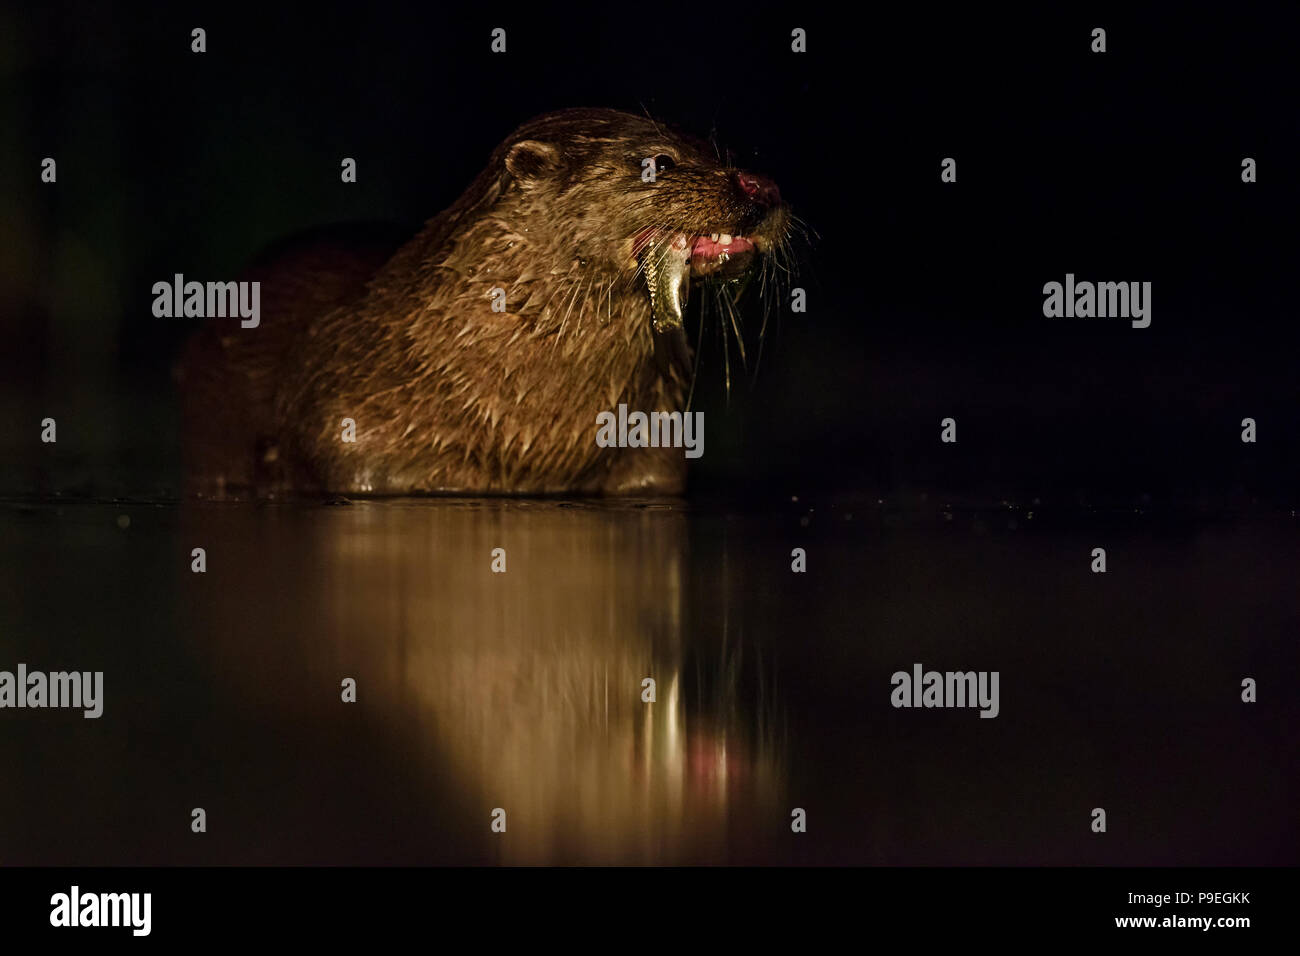 Eurasian River Otter - Lutra lutra, freswater nocturnal carnivores from European rivers. - Stock Image